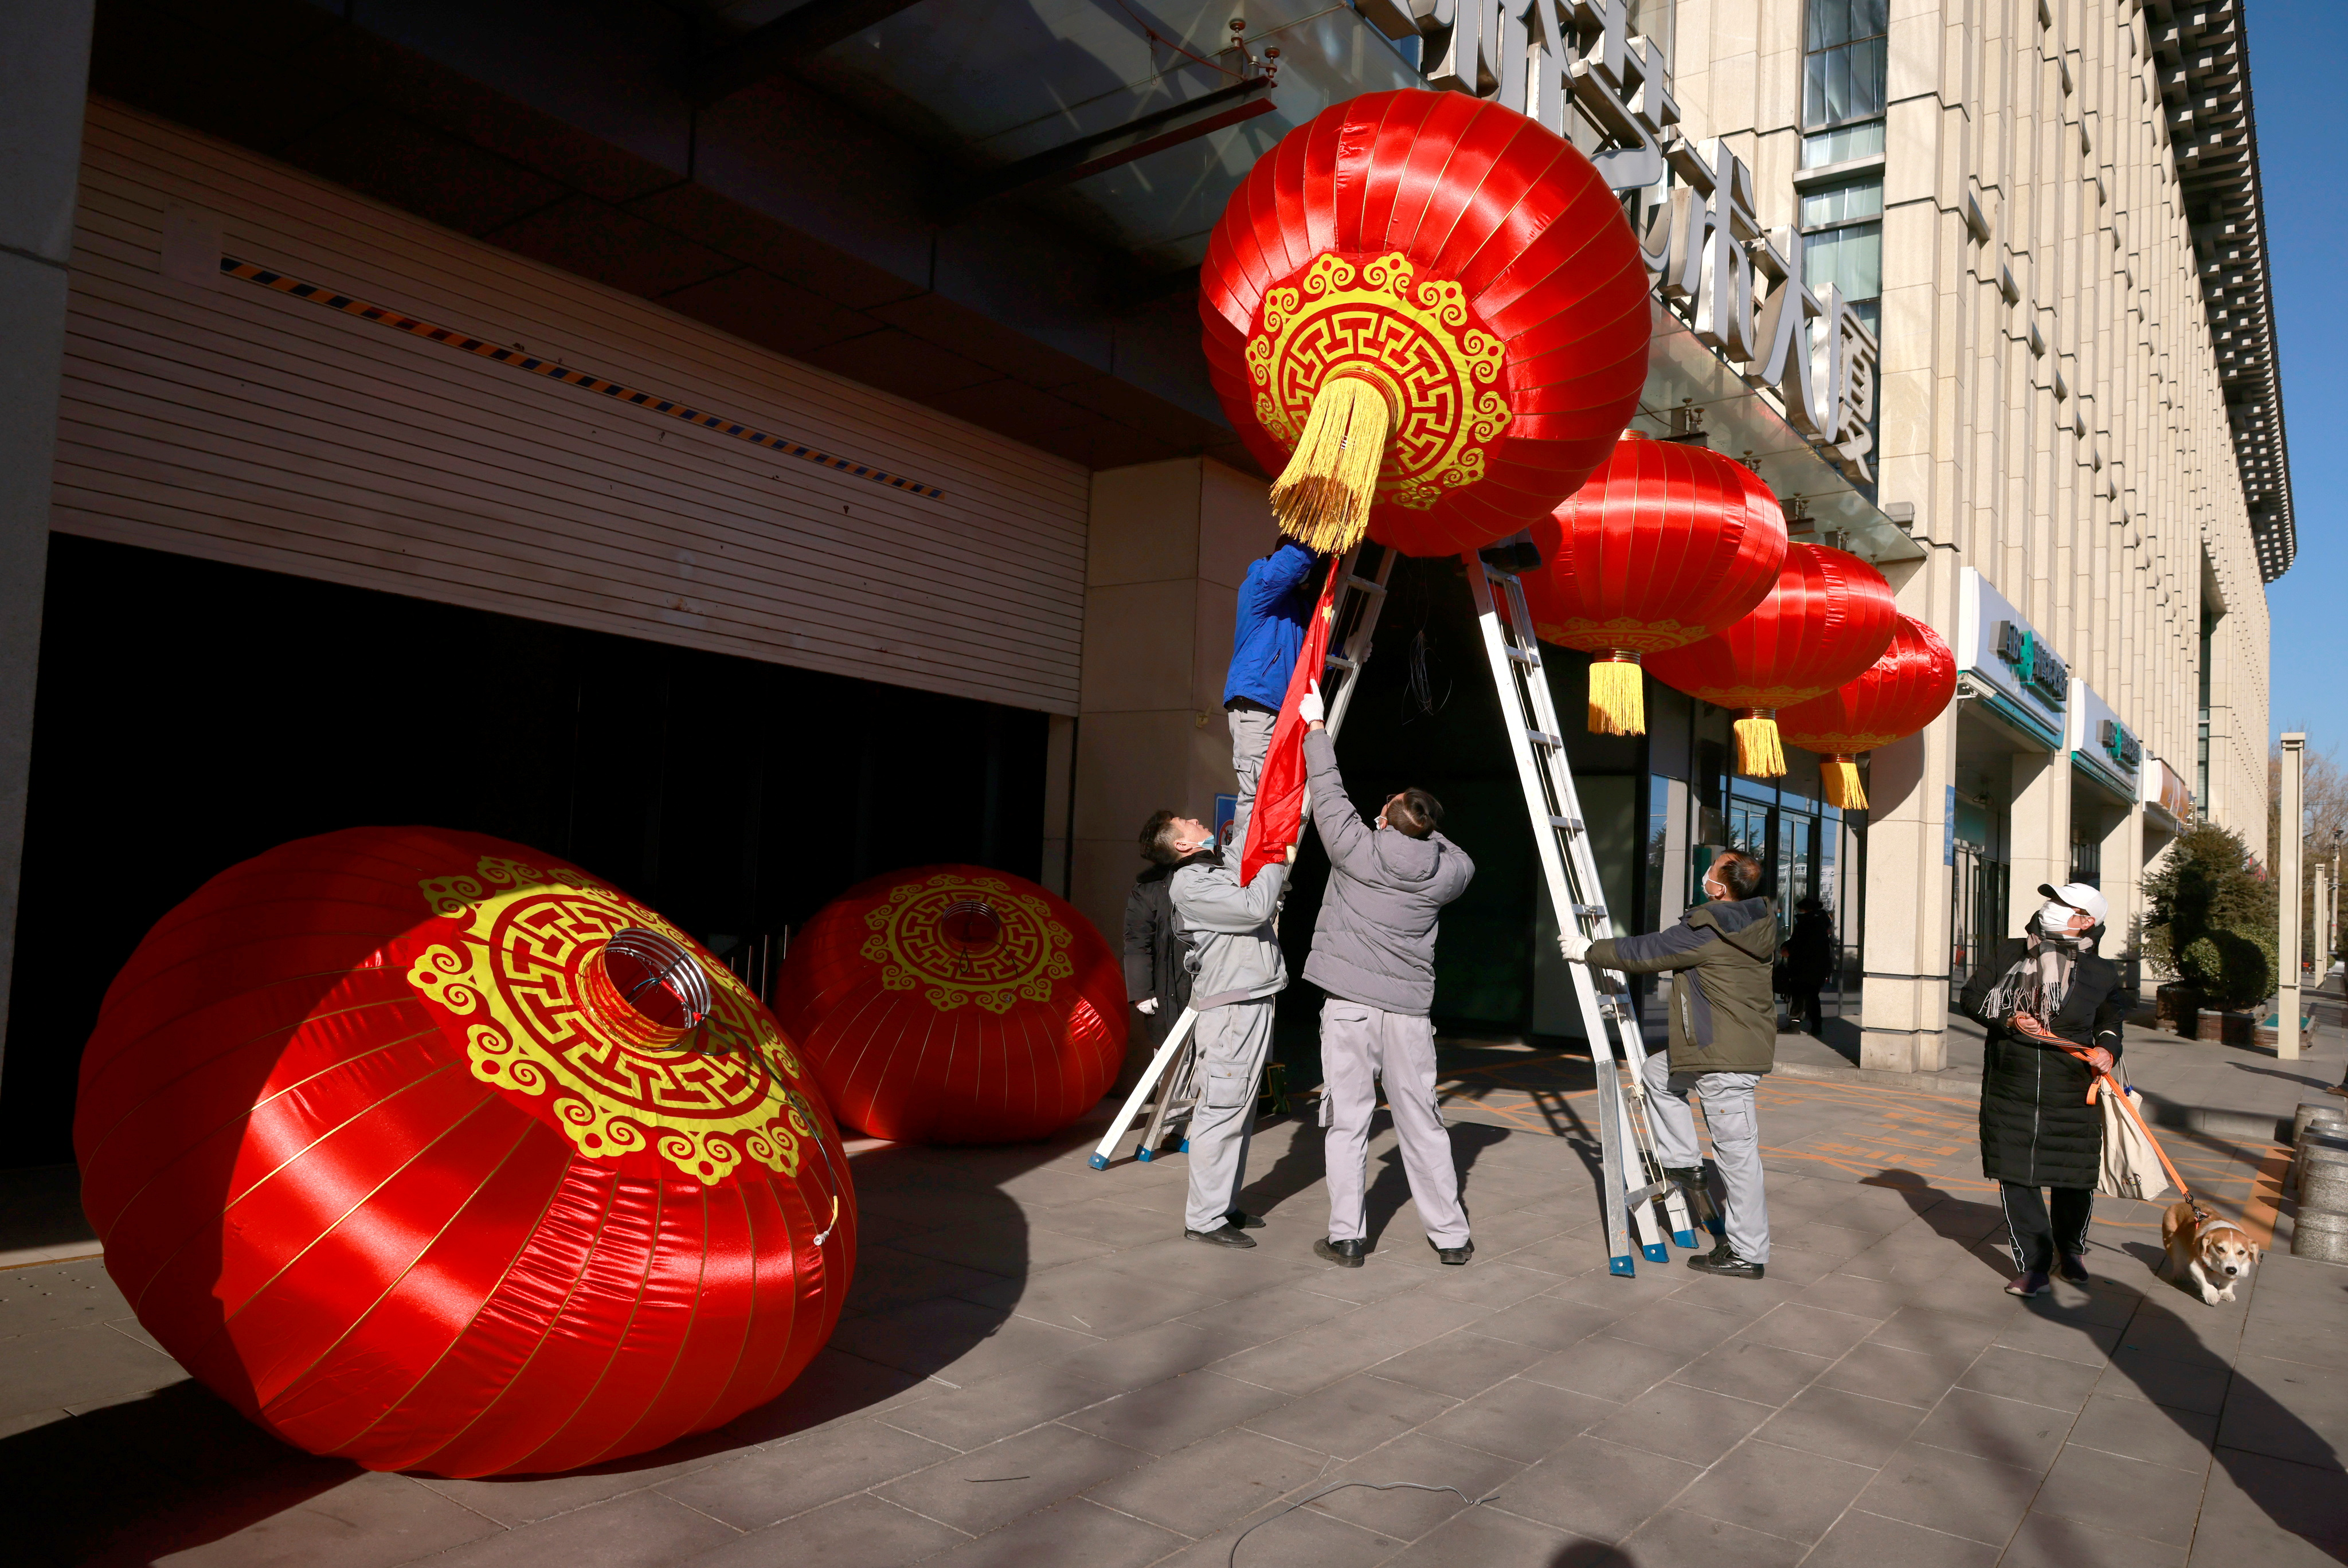 Men hang red lanterns marking New Year and Lunar New Year festivities following the outbreak of the coronavirus disease (COVID-19) in Beijing, China December 31, 2020. REUTERS/Thomas Peter/Files